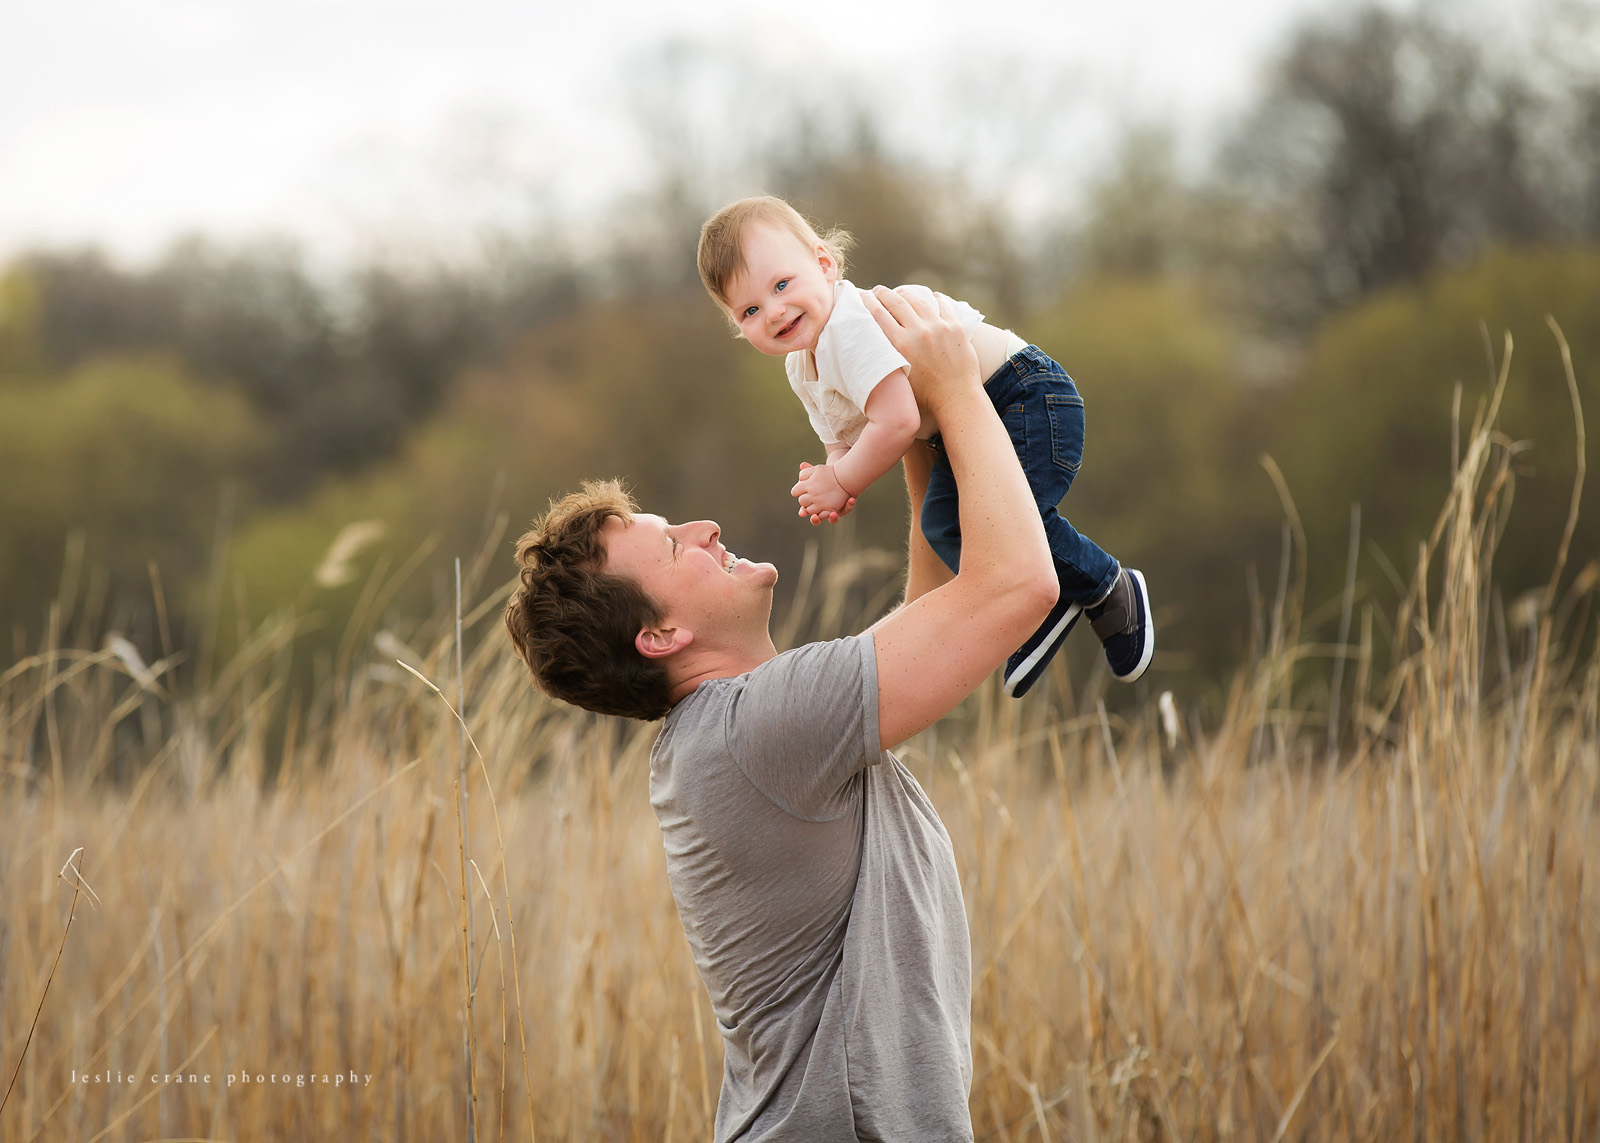 What to wear for photos: 15 Style tips for family pictures